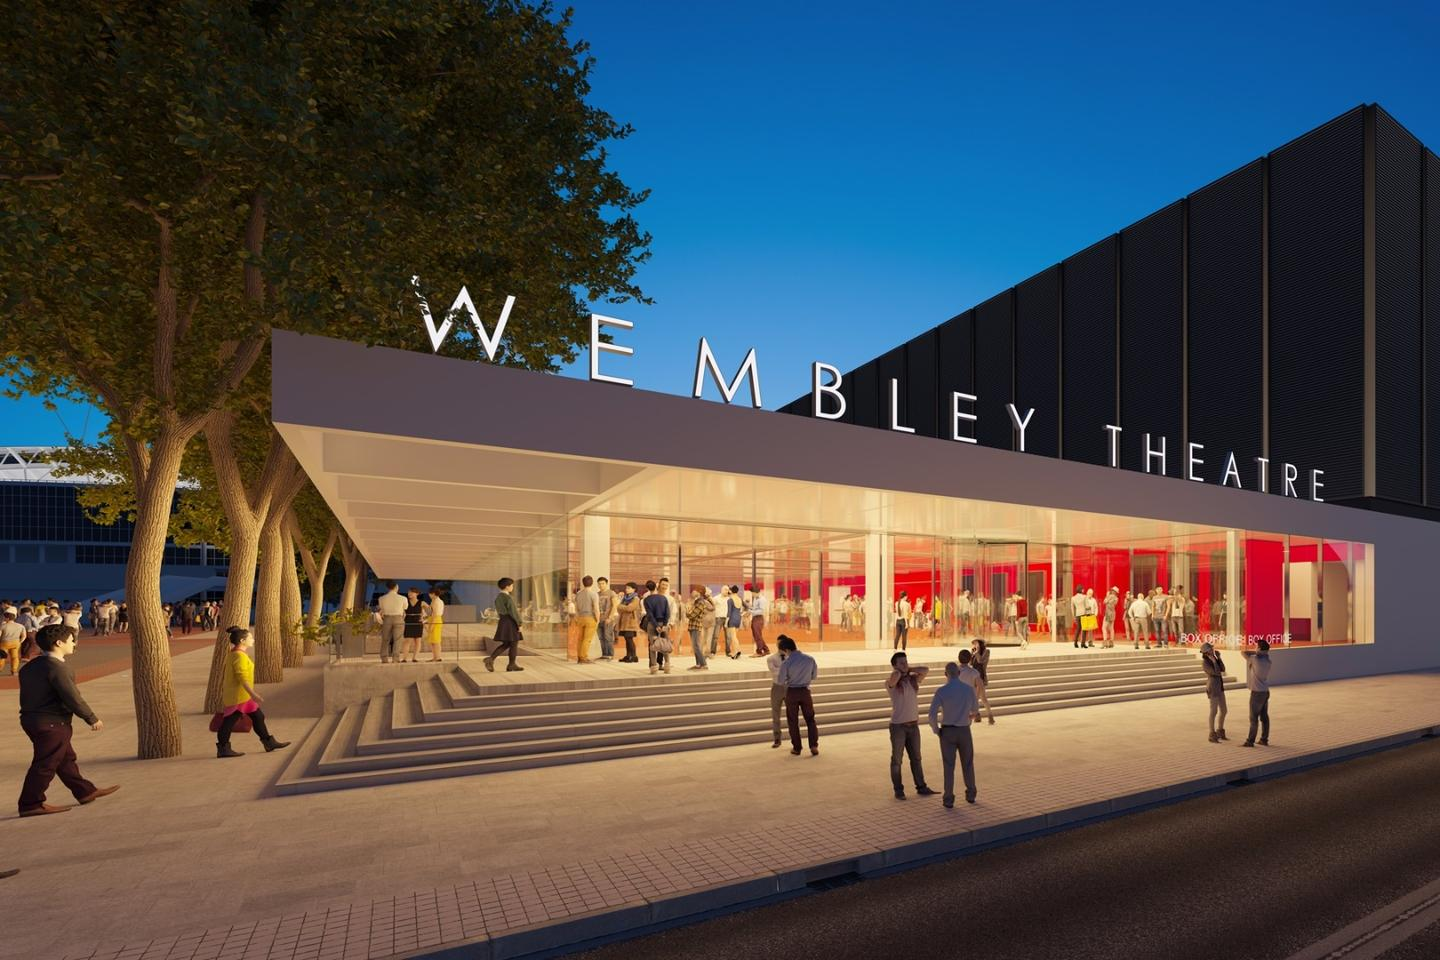 Wembley Theatre will sit on a a 0.79-ha (2-ac) site